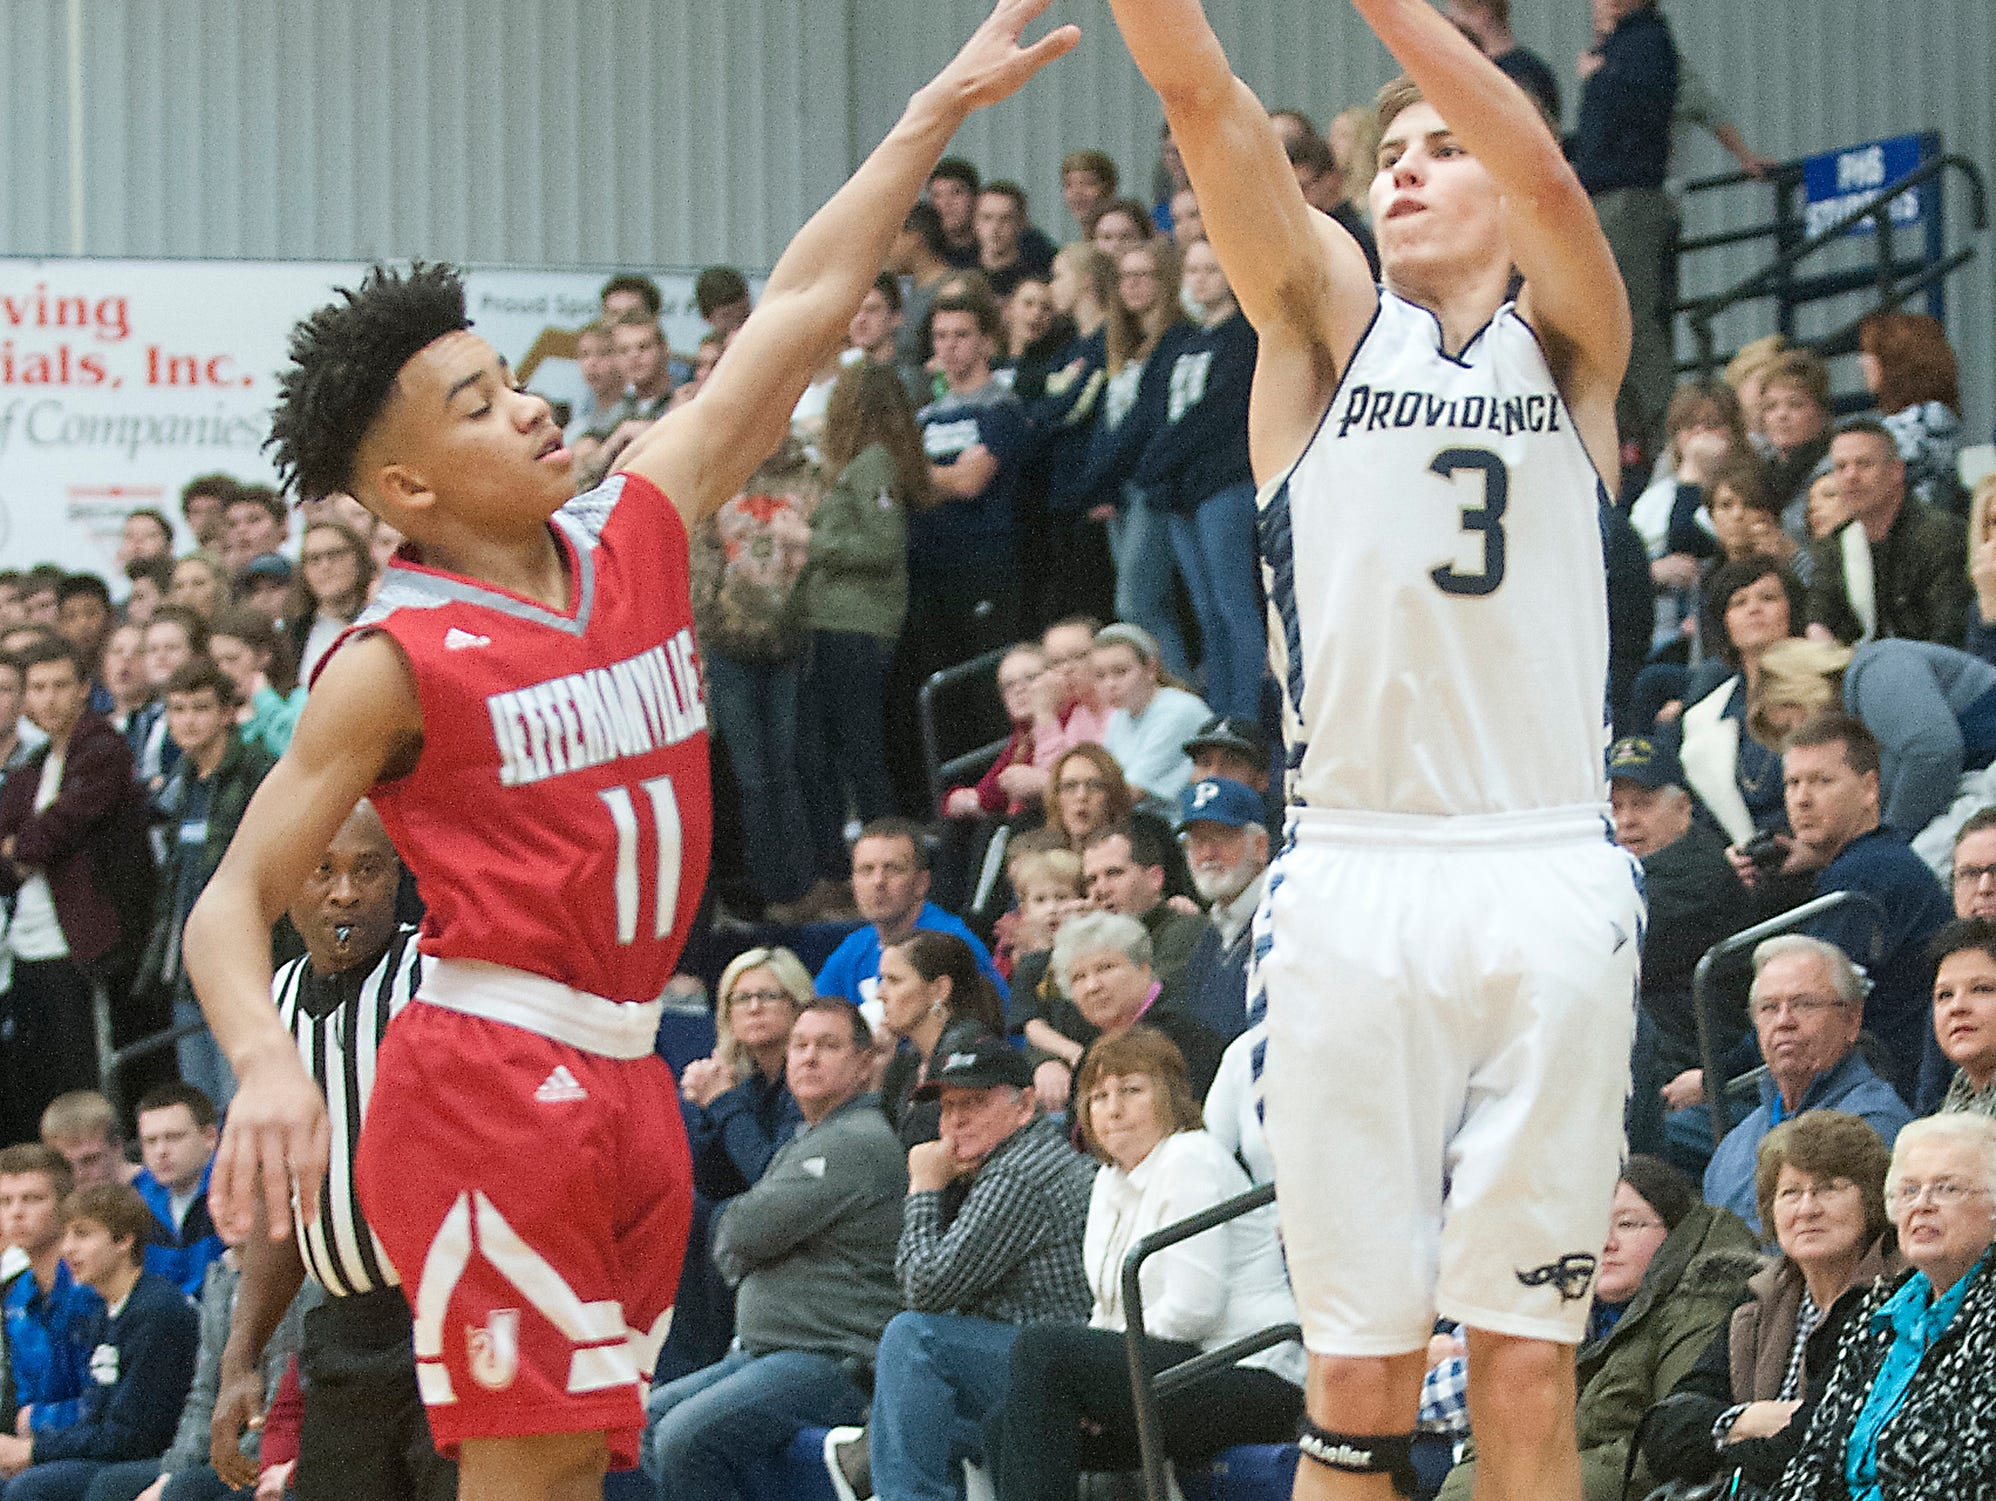 Providence guard Juston Betz shoots a three-pointer over Jeffersonville guard Jacob Jones. 14 January 2017